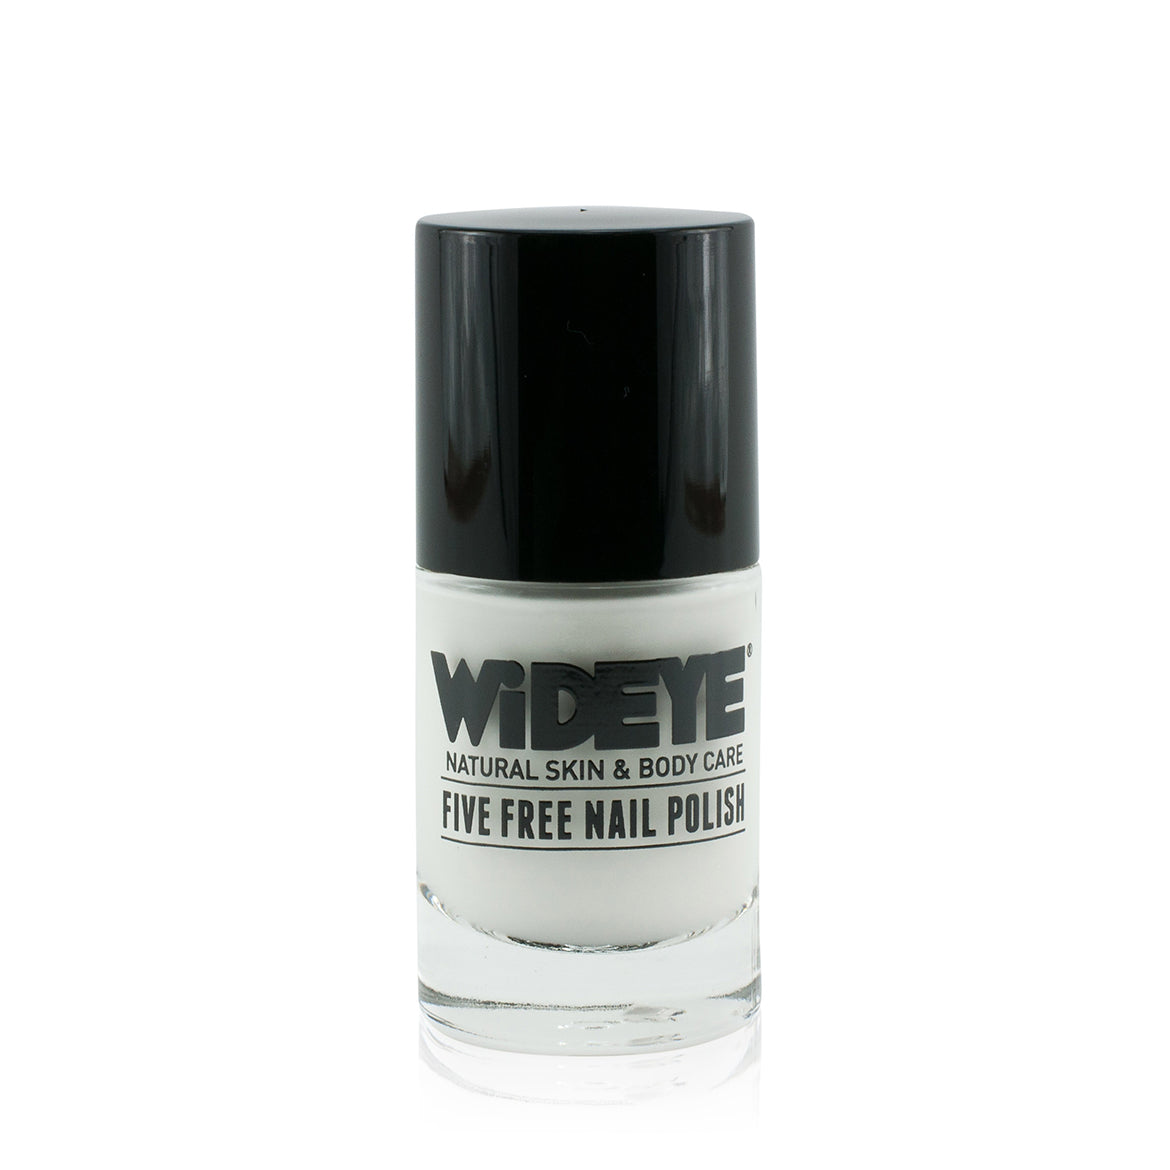 French White nail varnish in glass bottle by WiDEYE.